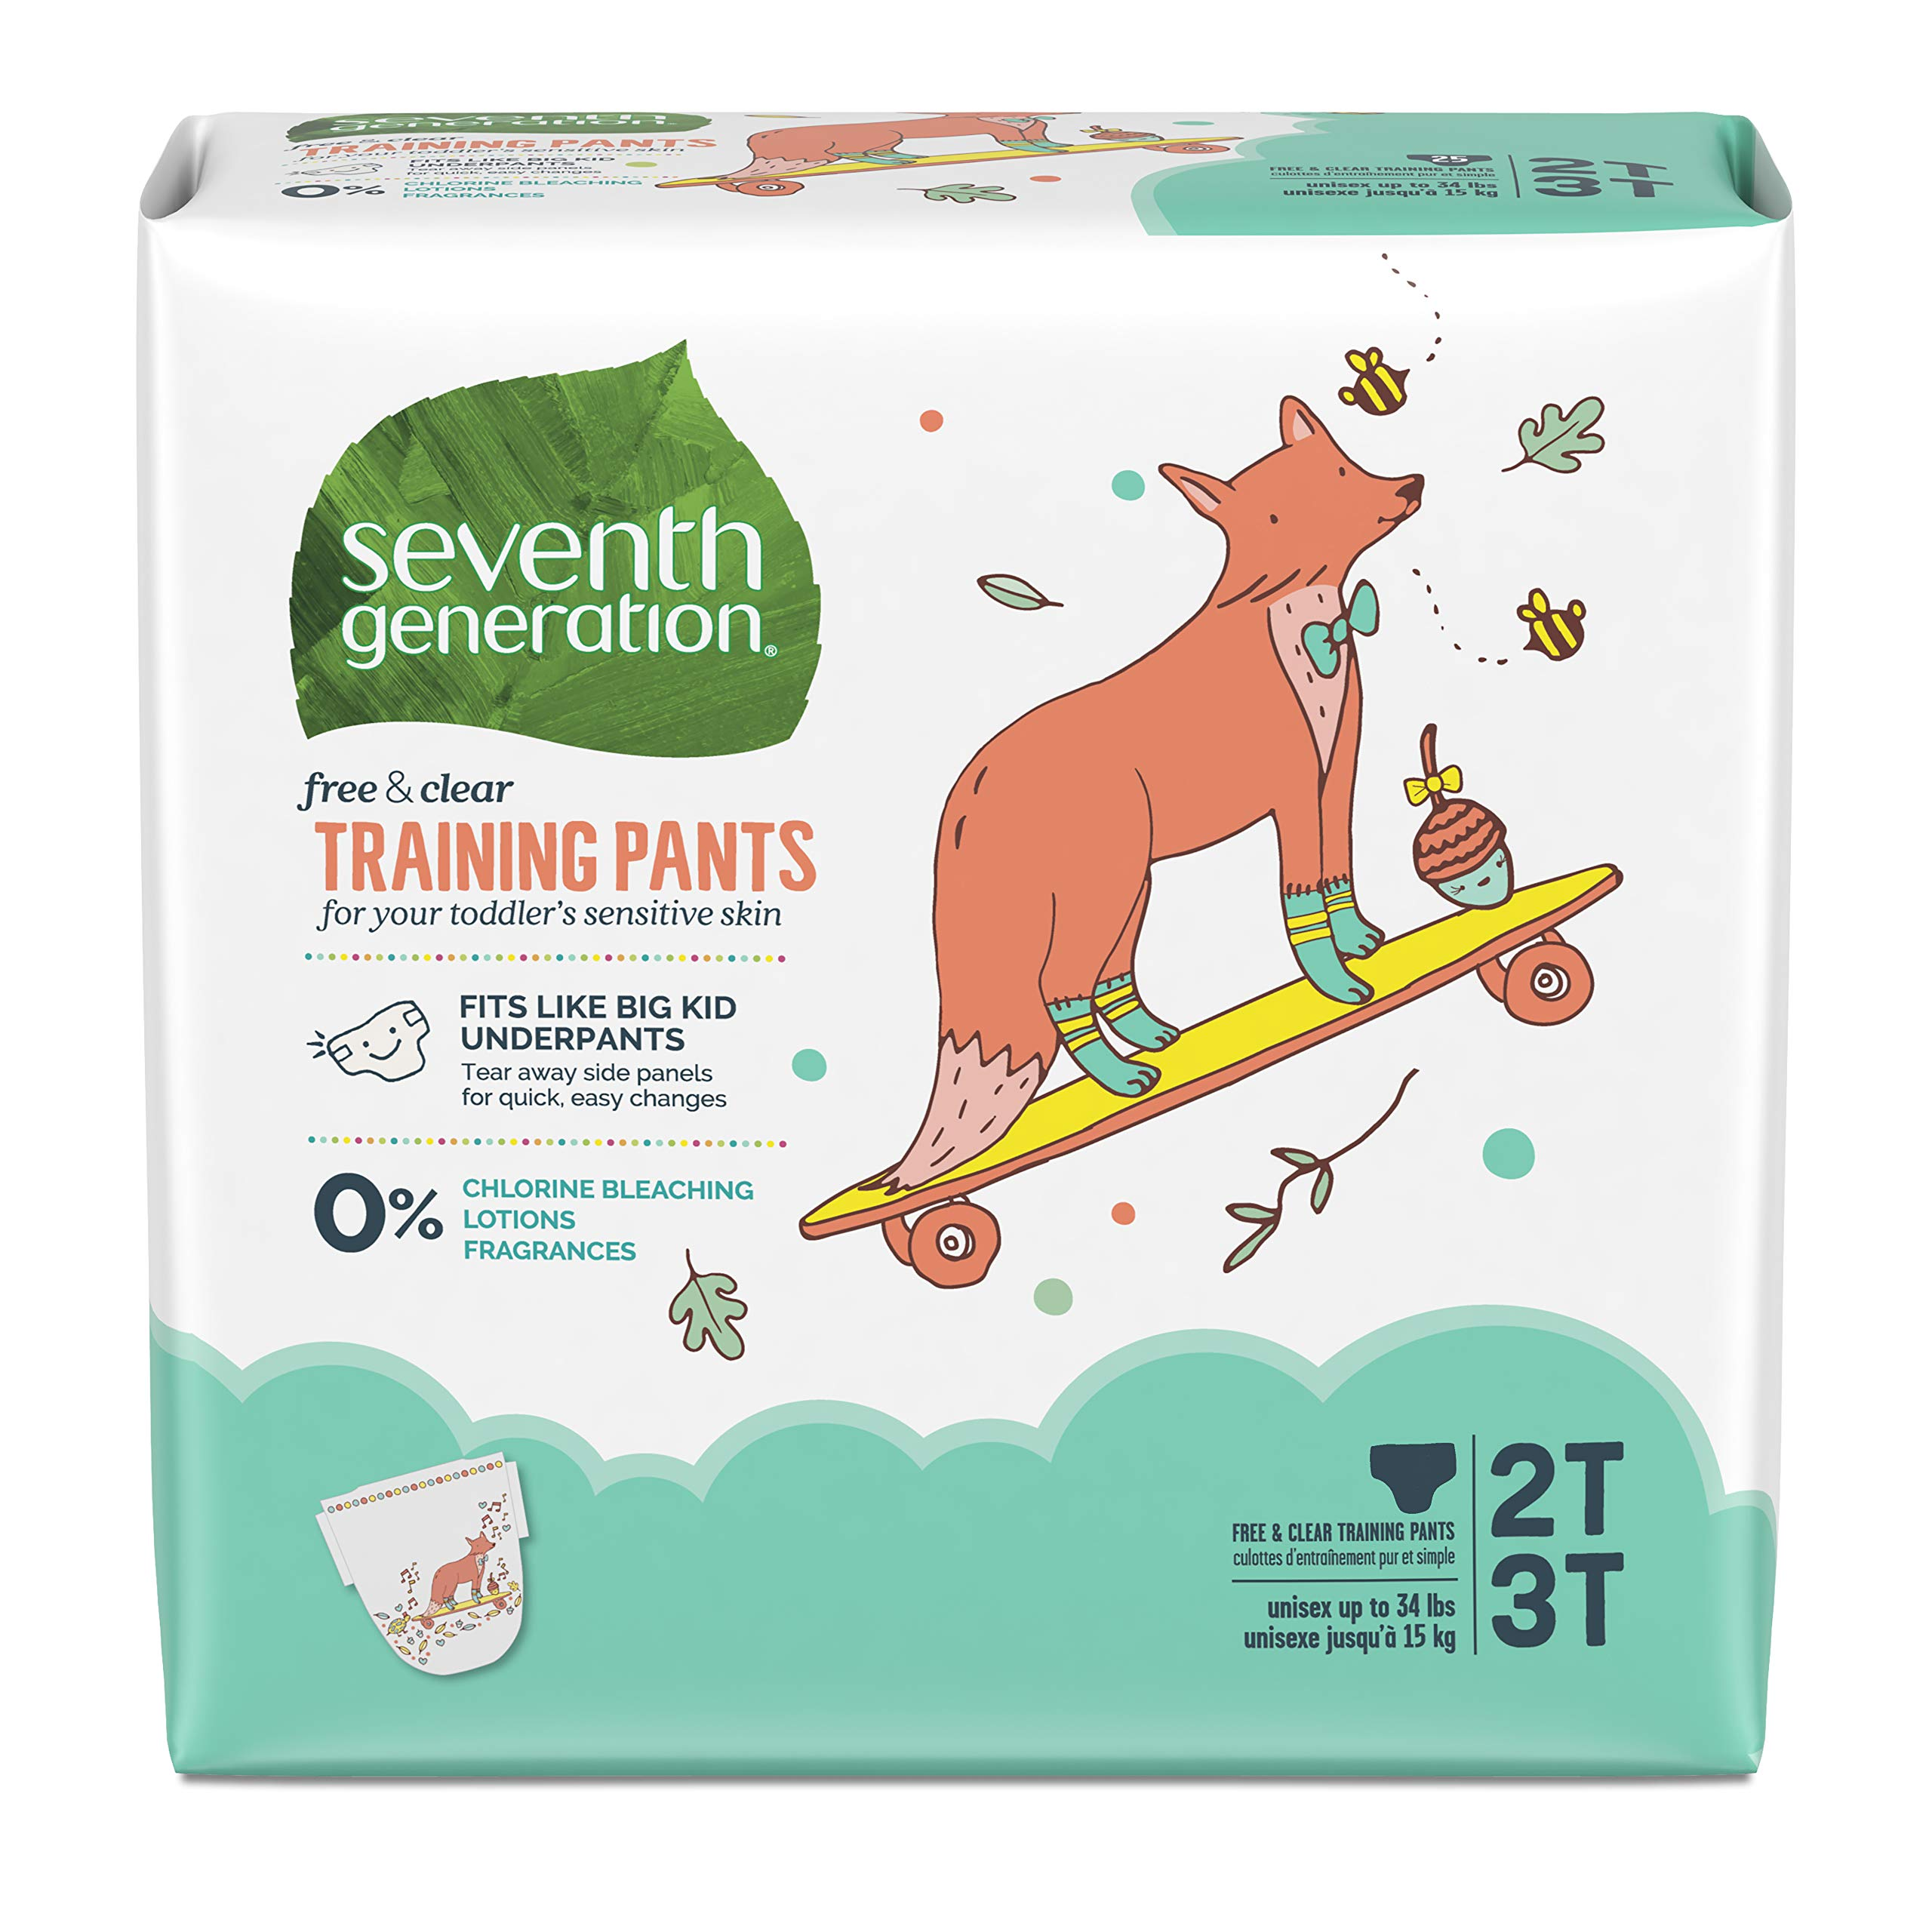 Seventh Generation Baby & Toddler Training Pants, Medium Size 2T-3T, 25 Count, Pack of 4(Packaging May Vary) by Seventh Generation